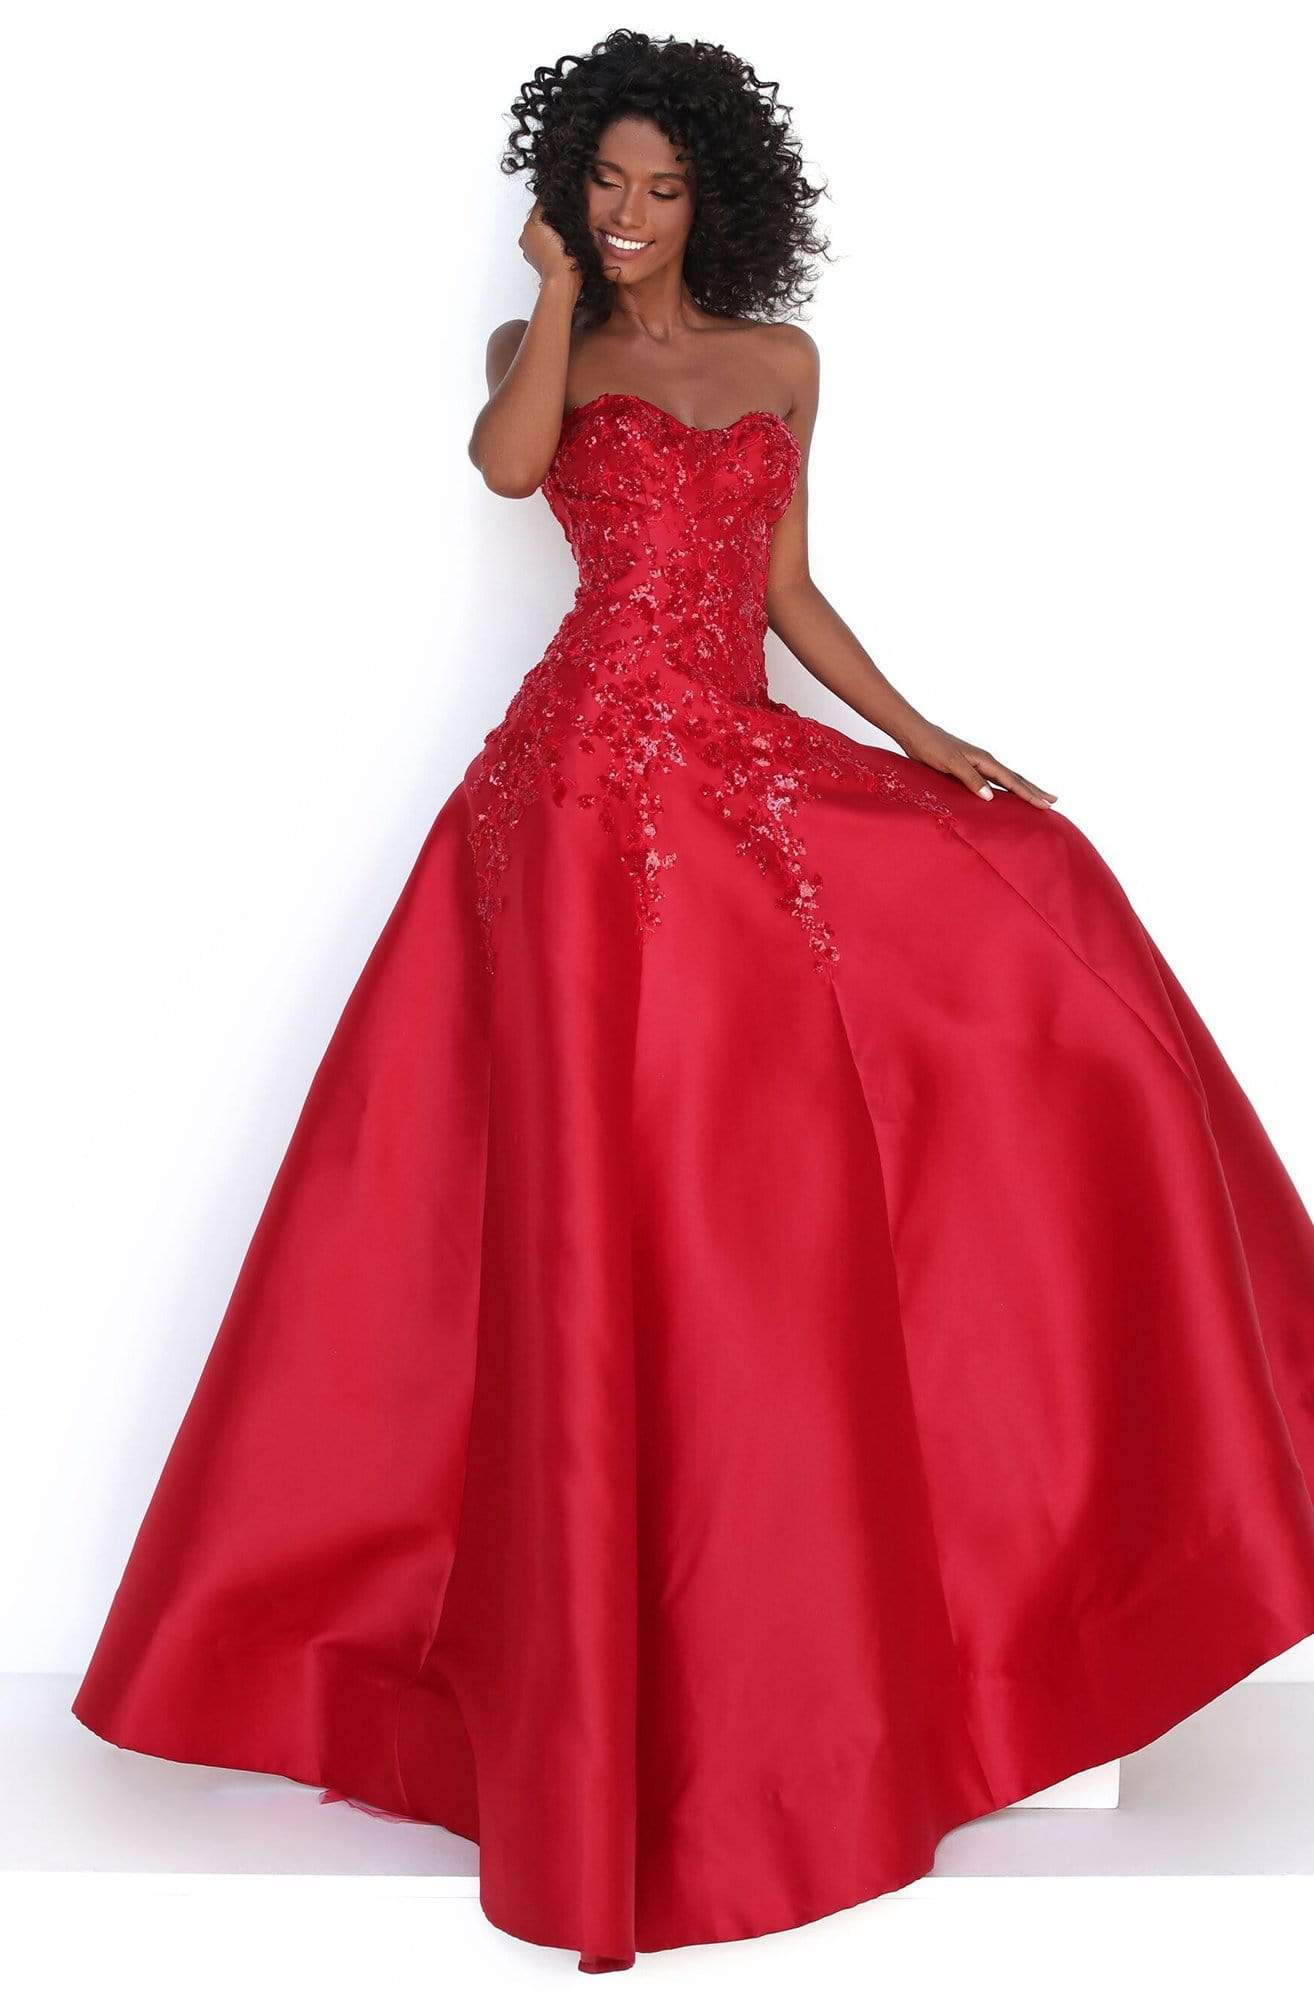 Tarik Ediz - 50695 Strapless Sweetheart Sequined Floral Gown Evening Dresses 0 / Red